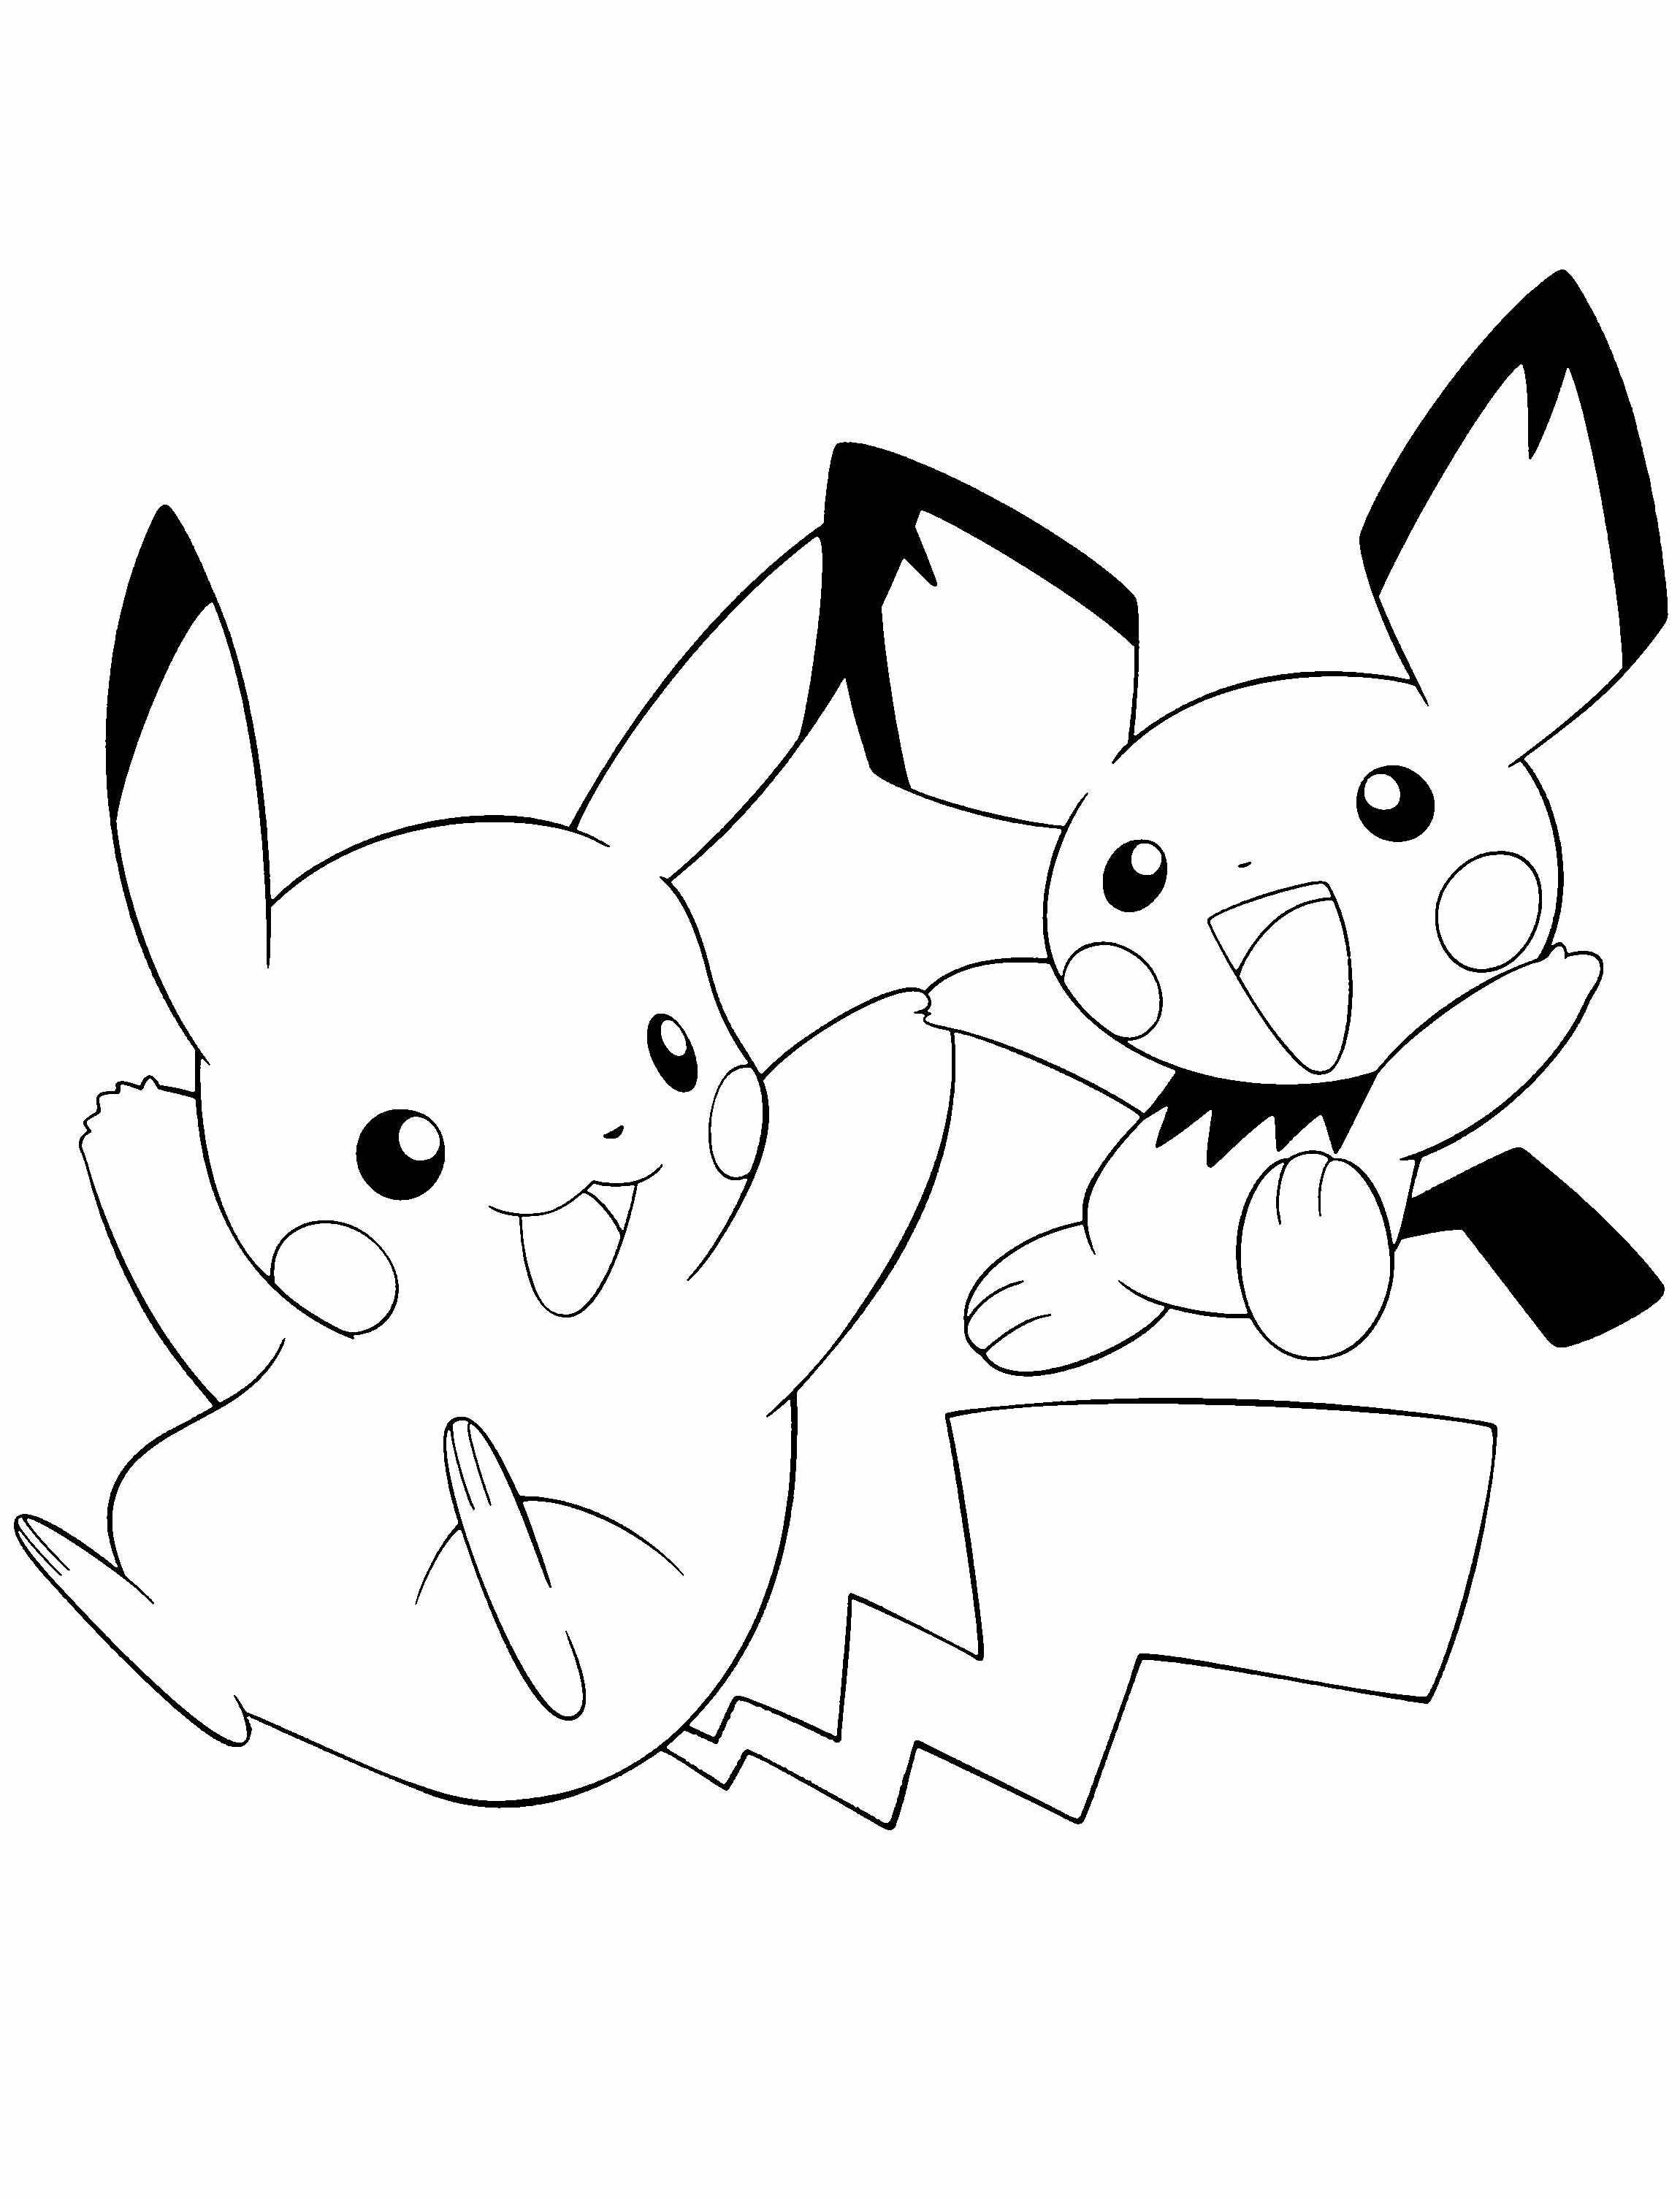 Pokemon Pikachu And Friends Coloring Page Com Imagens Pokemon